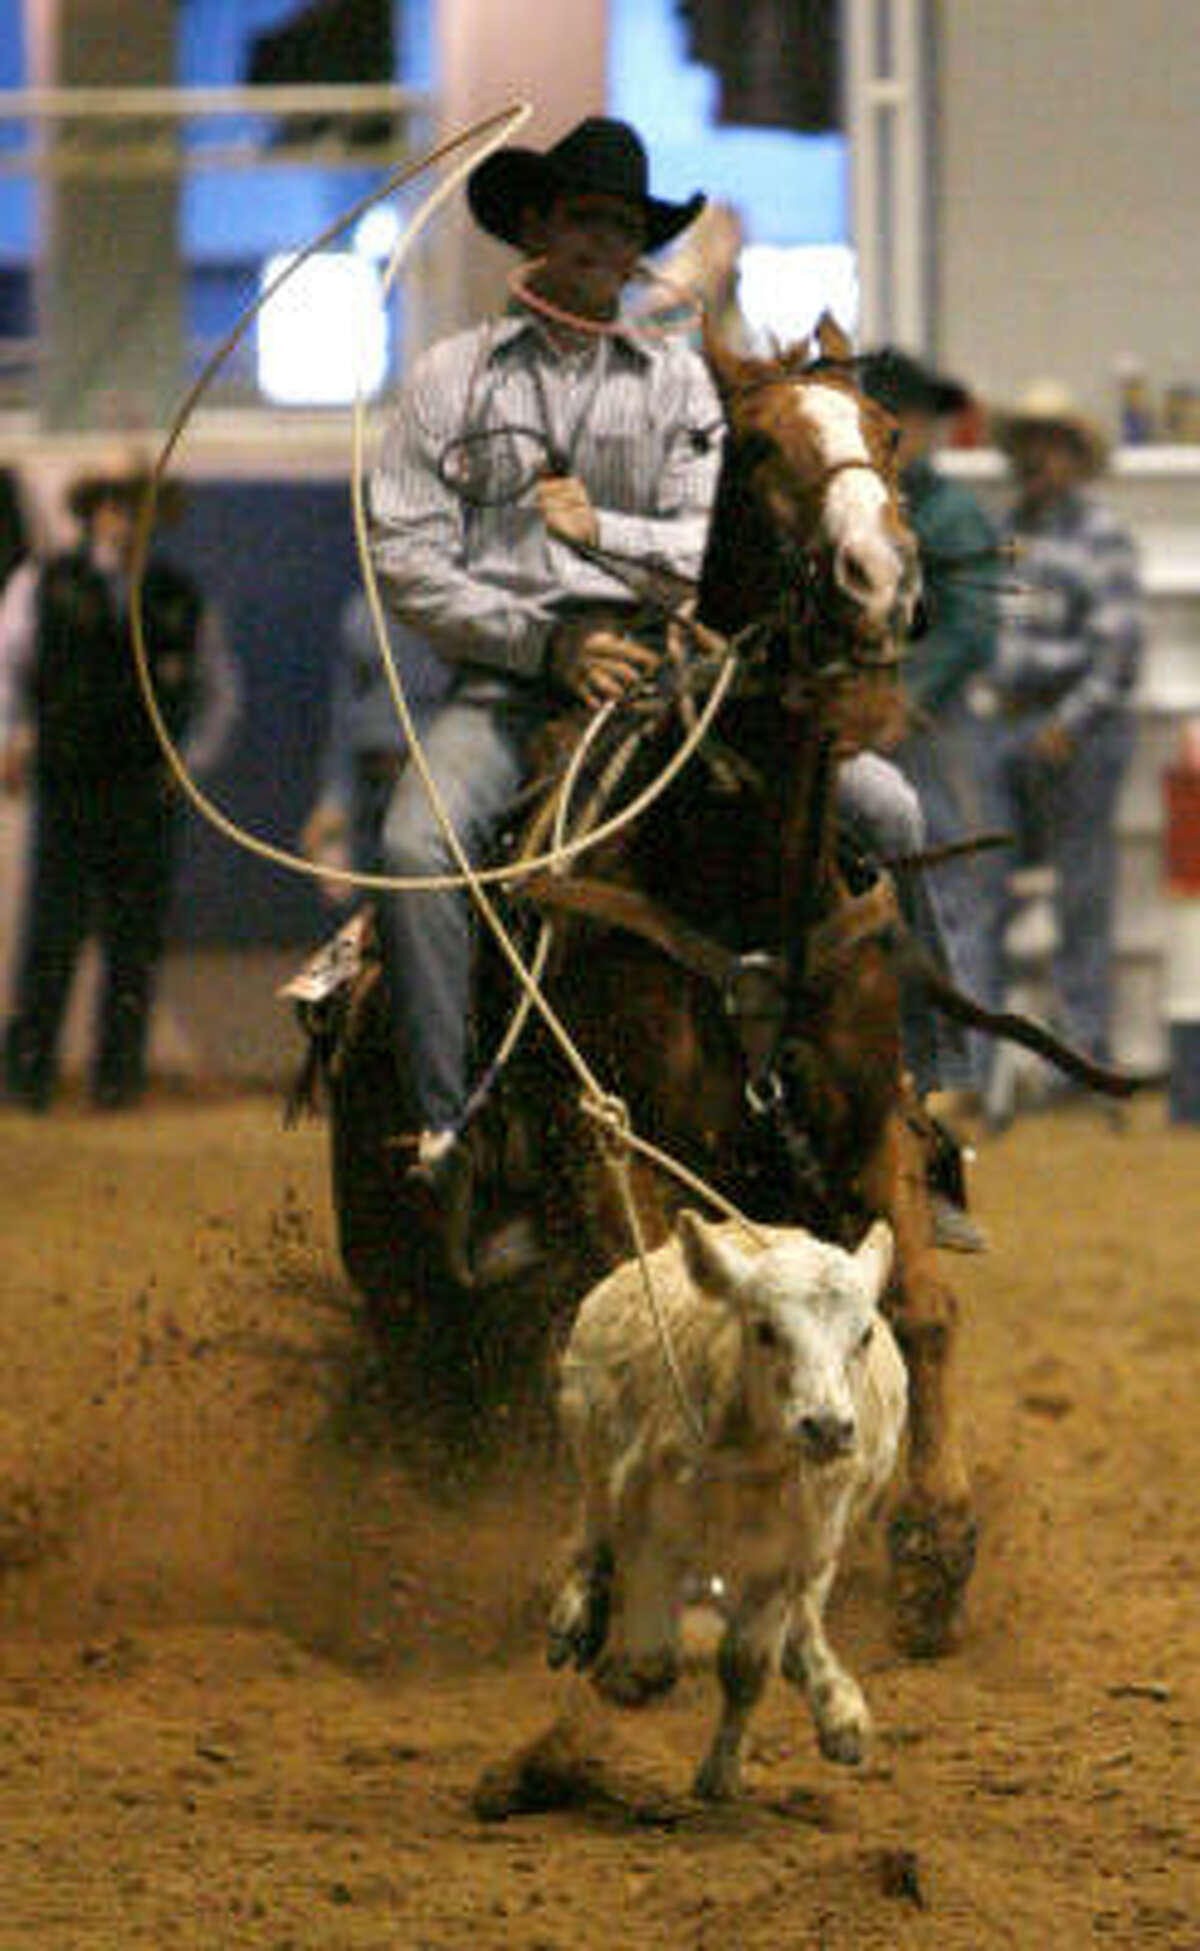 Matthew Love, riding Doc's Dextrose, goes after a calf during the Youth Calf Roping event.